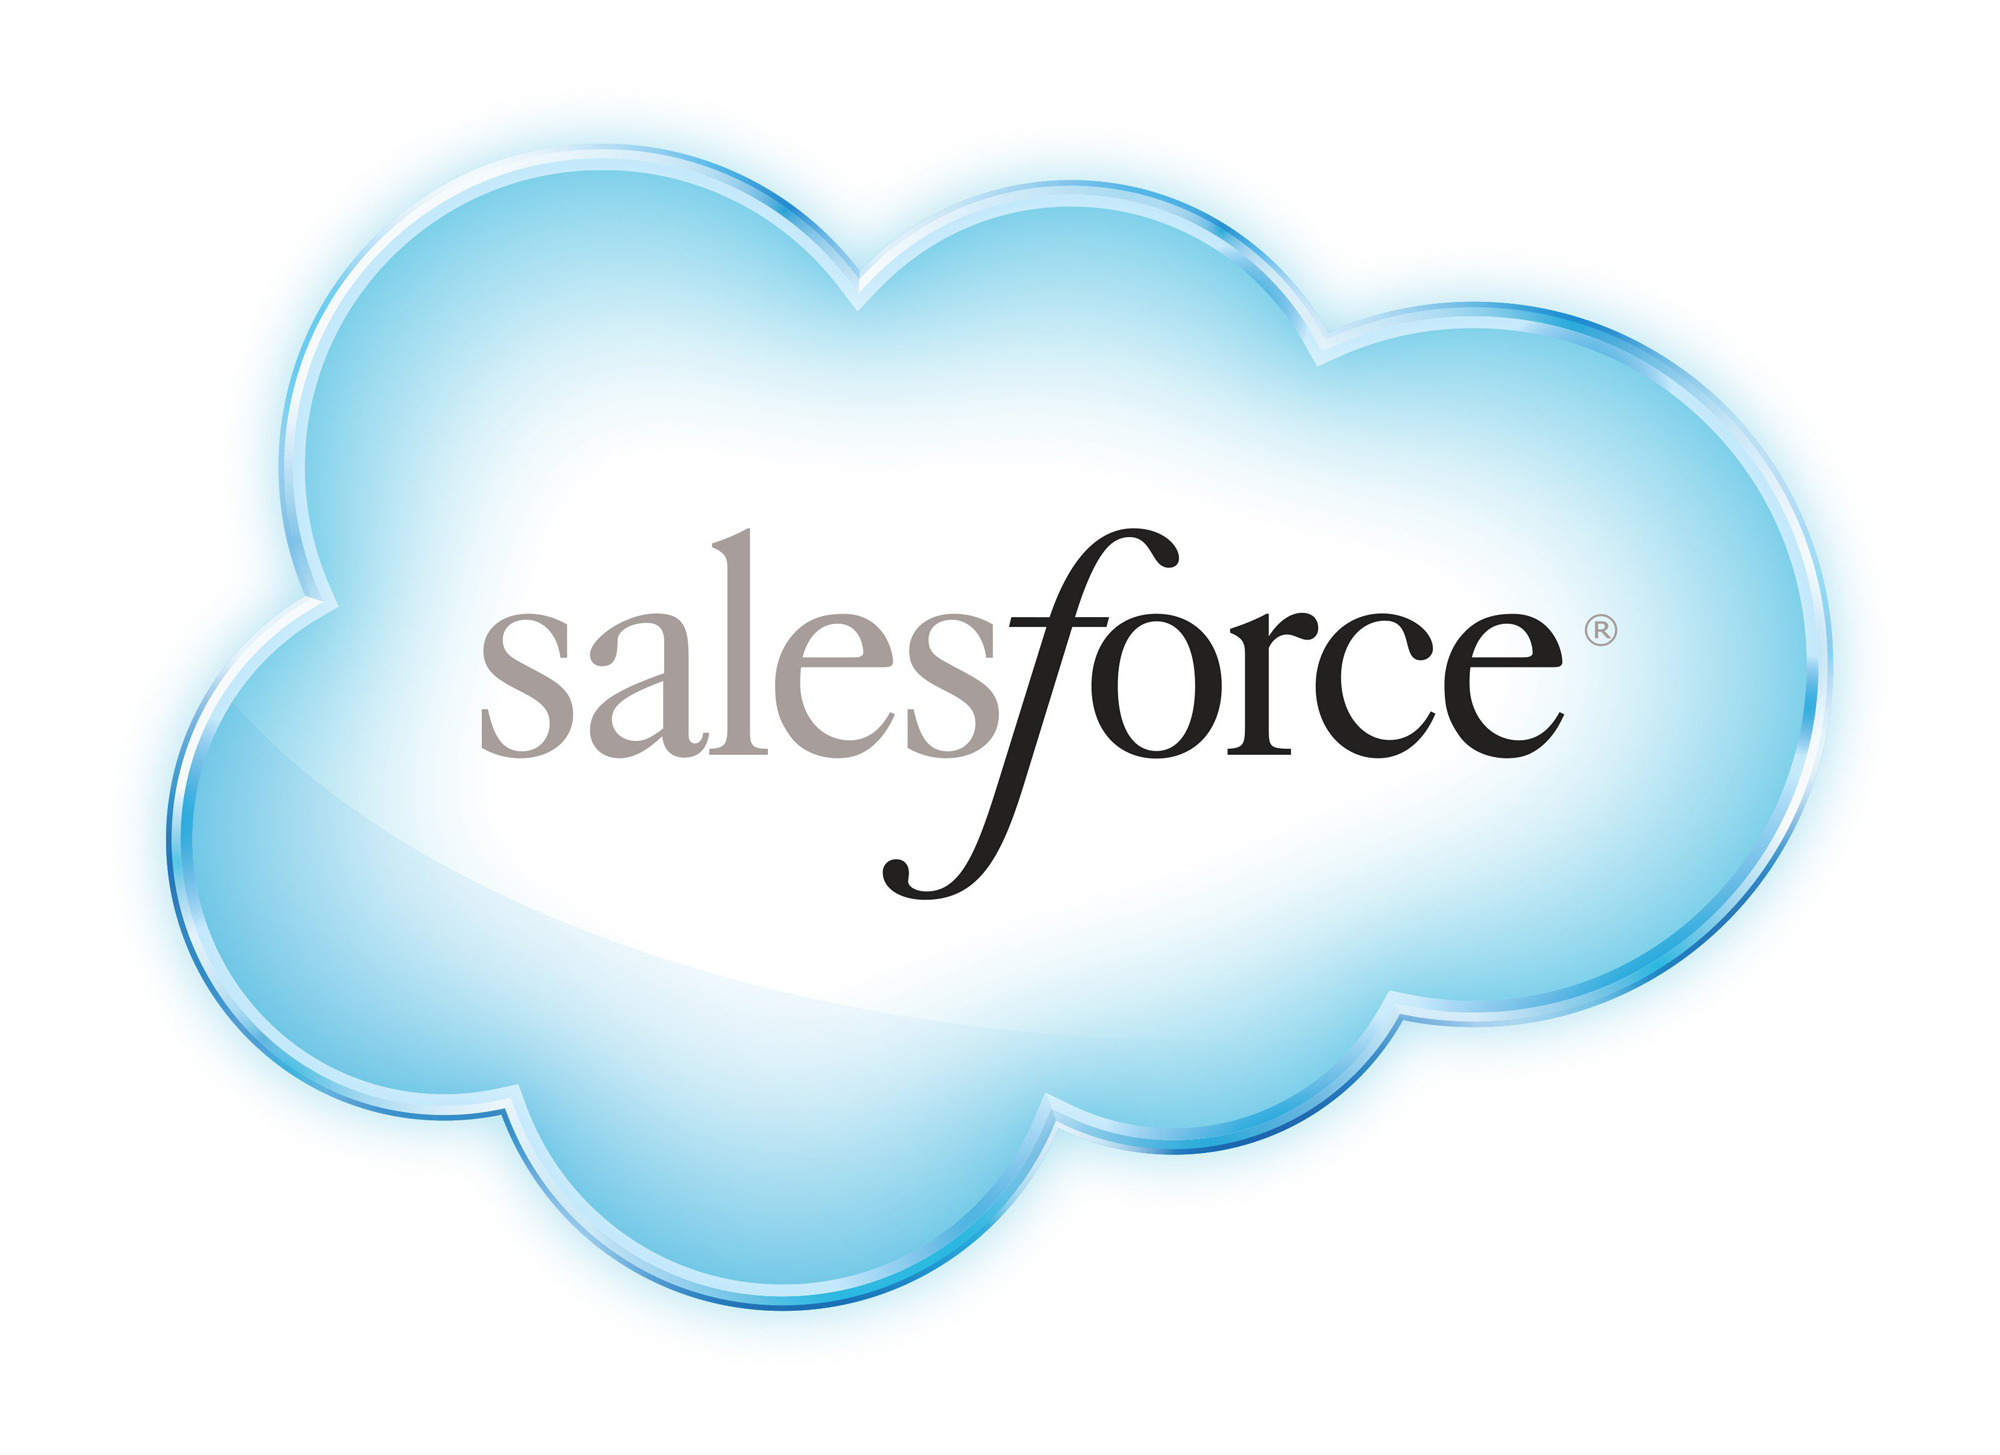 Salesforce: Salesforce Logo, Salesforce Symbol, Meaning, History And